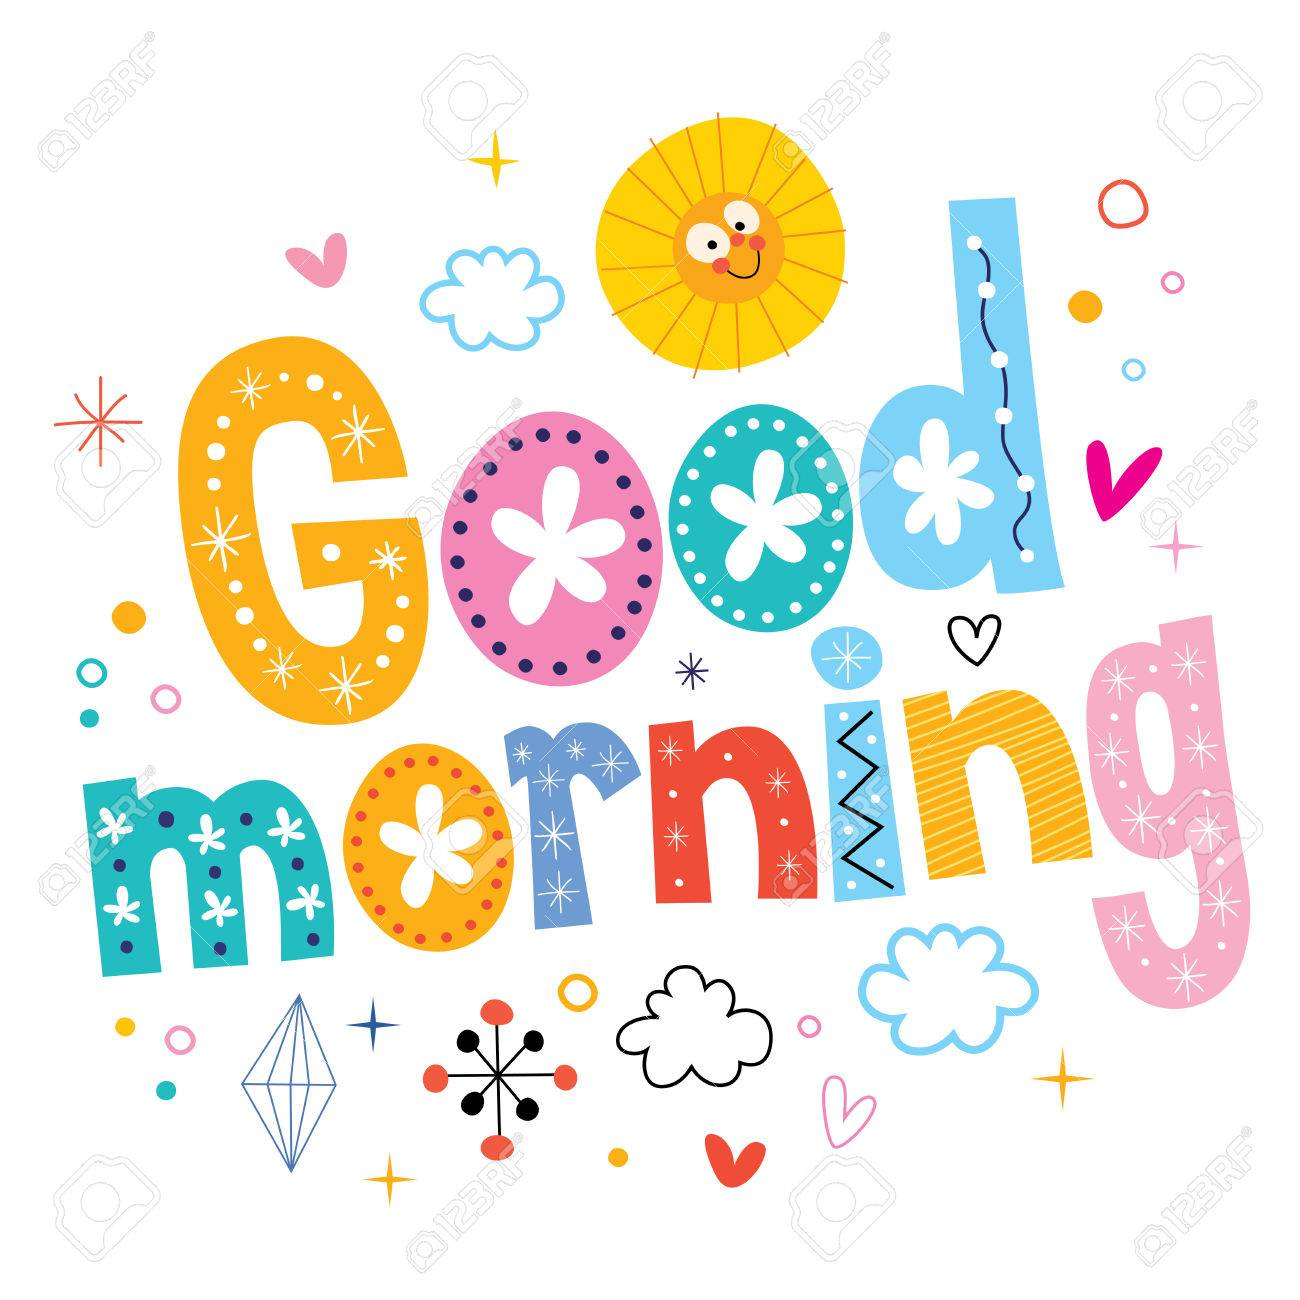 good morning Stock Vector - 54529581